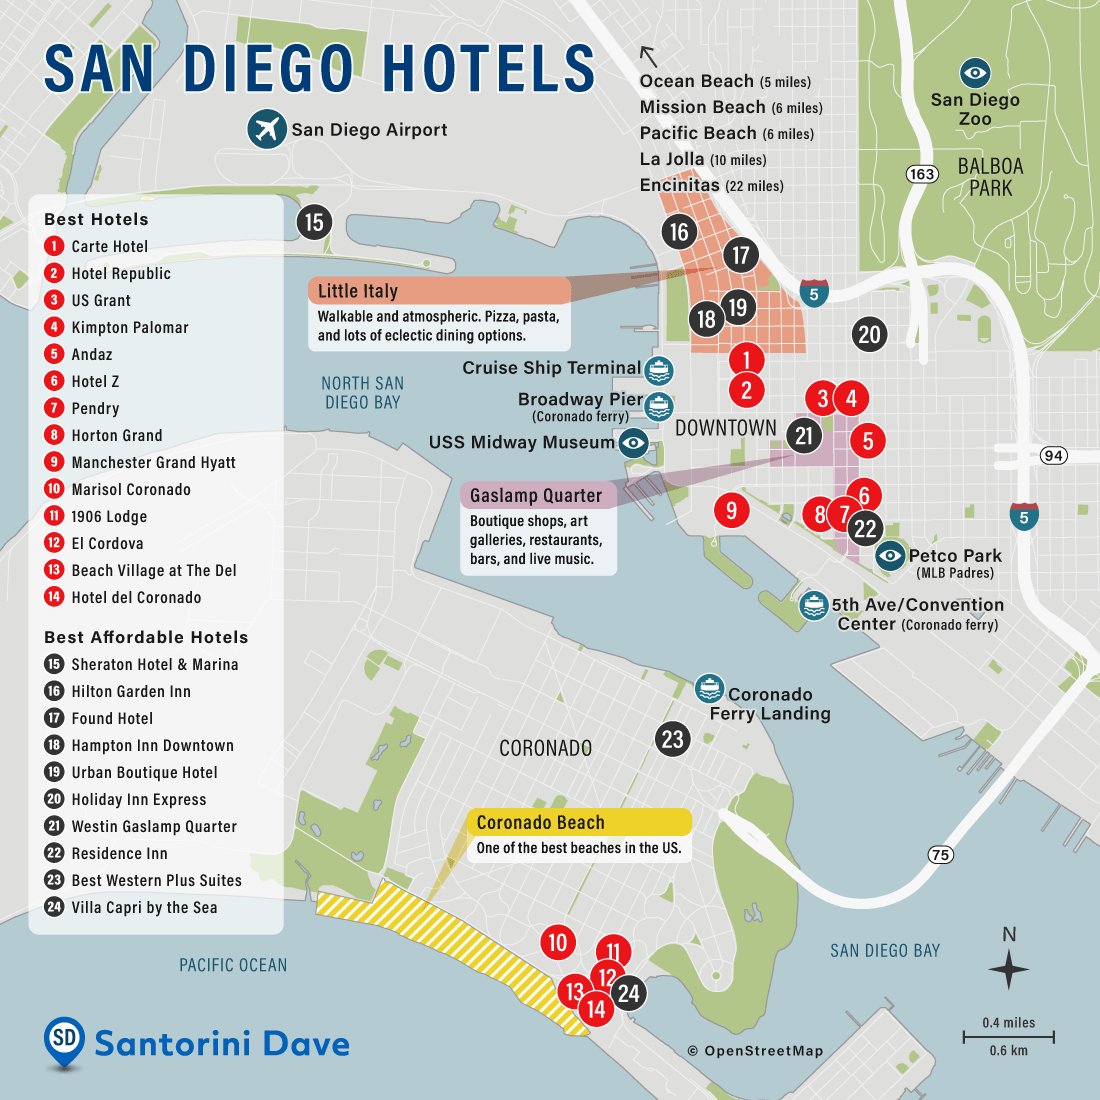 Map of Downtown San Diego Hotels and Neighborhoods.